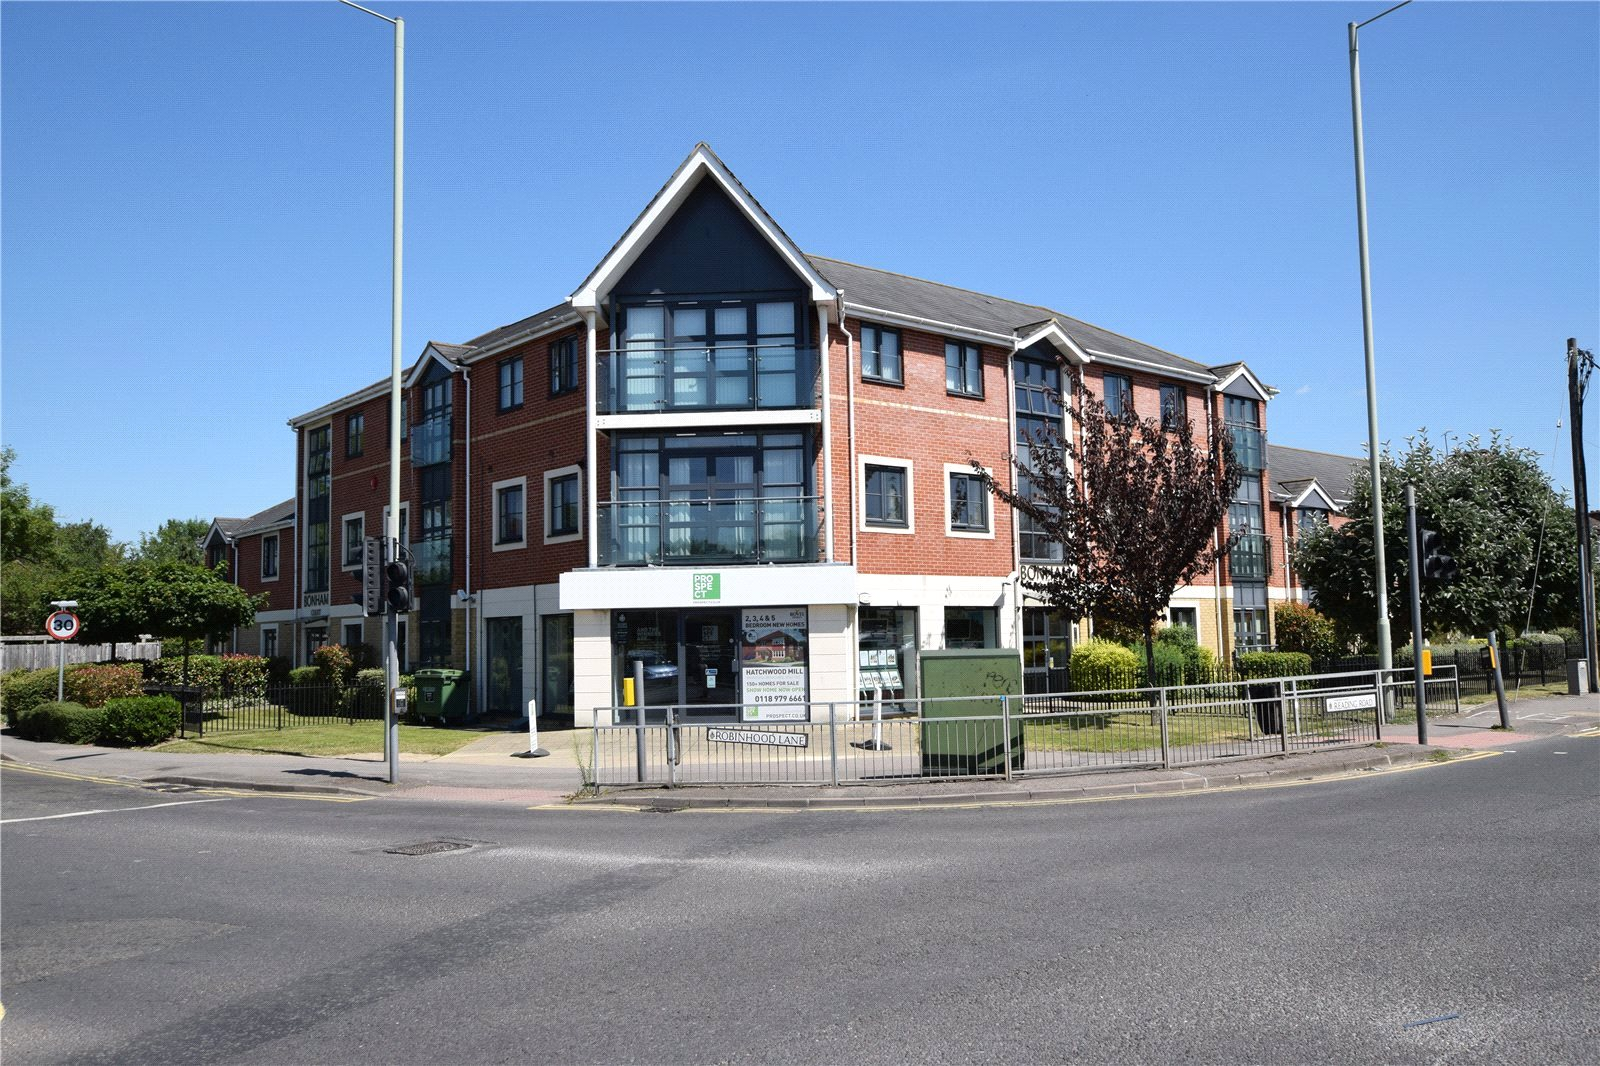 2 Bedrooms Apartment Flat for sale in Bonham Court, Robinhood Lane, Wokingham, Berkshire, RG41